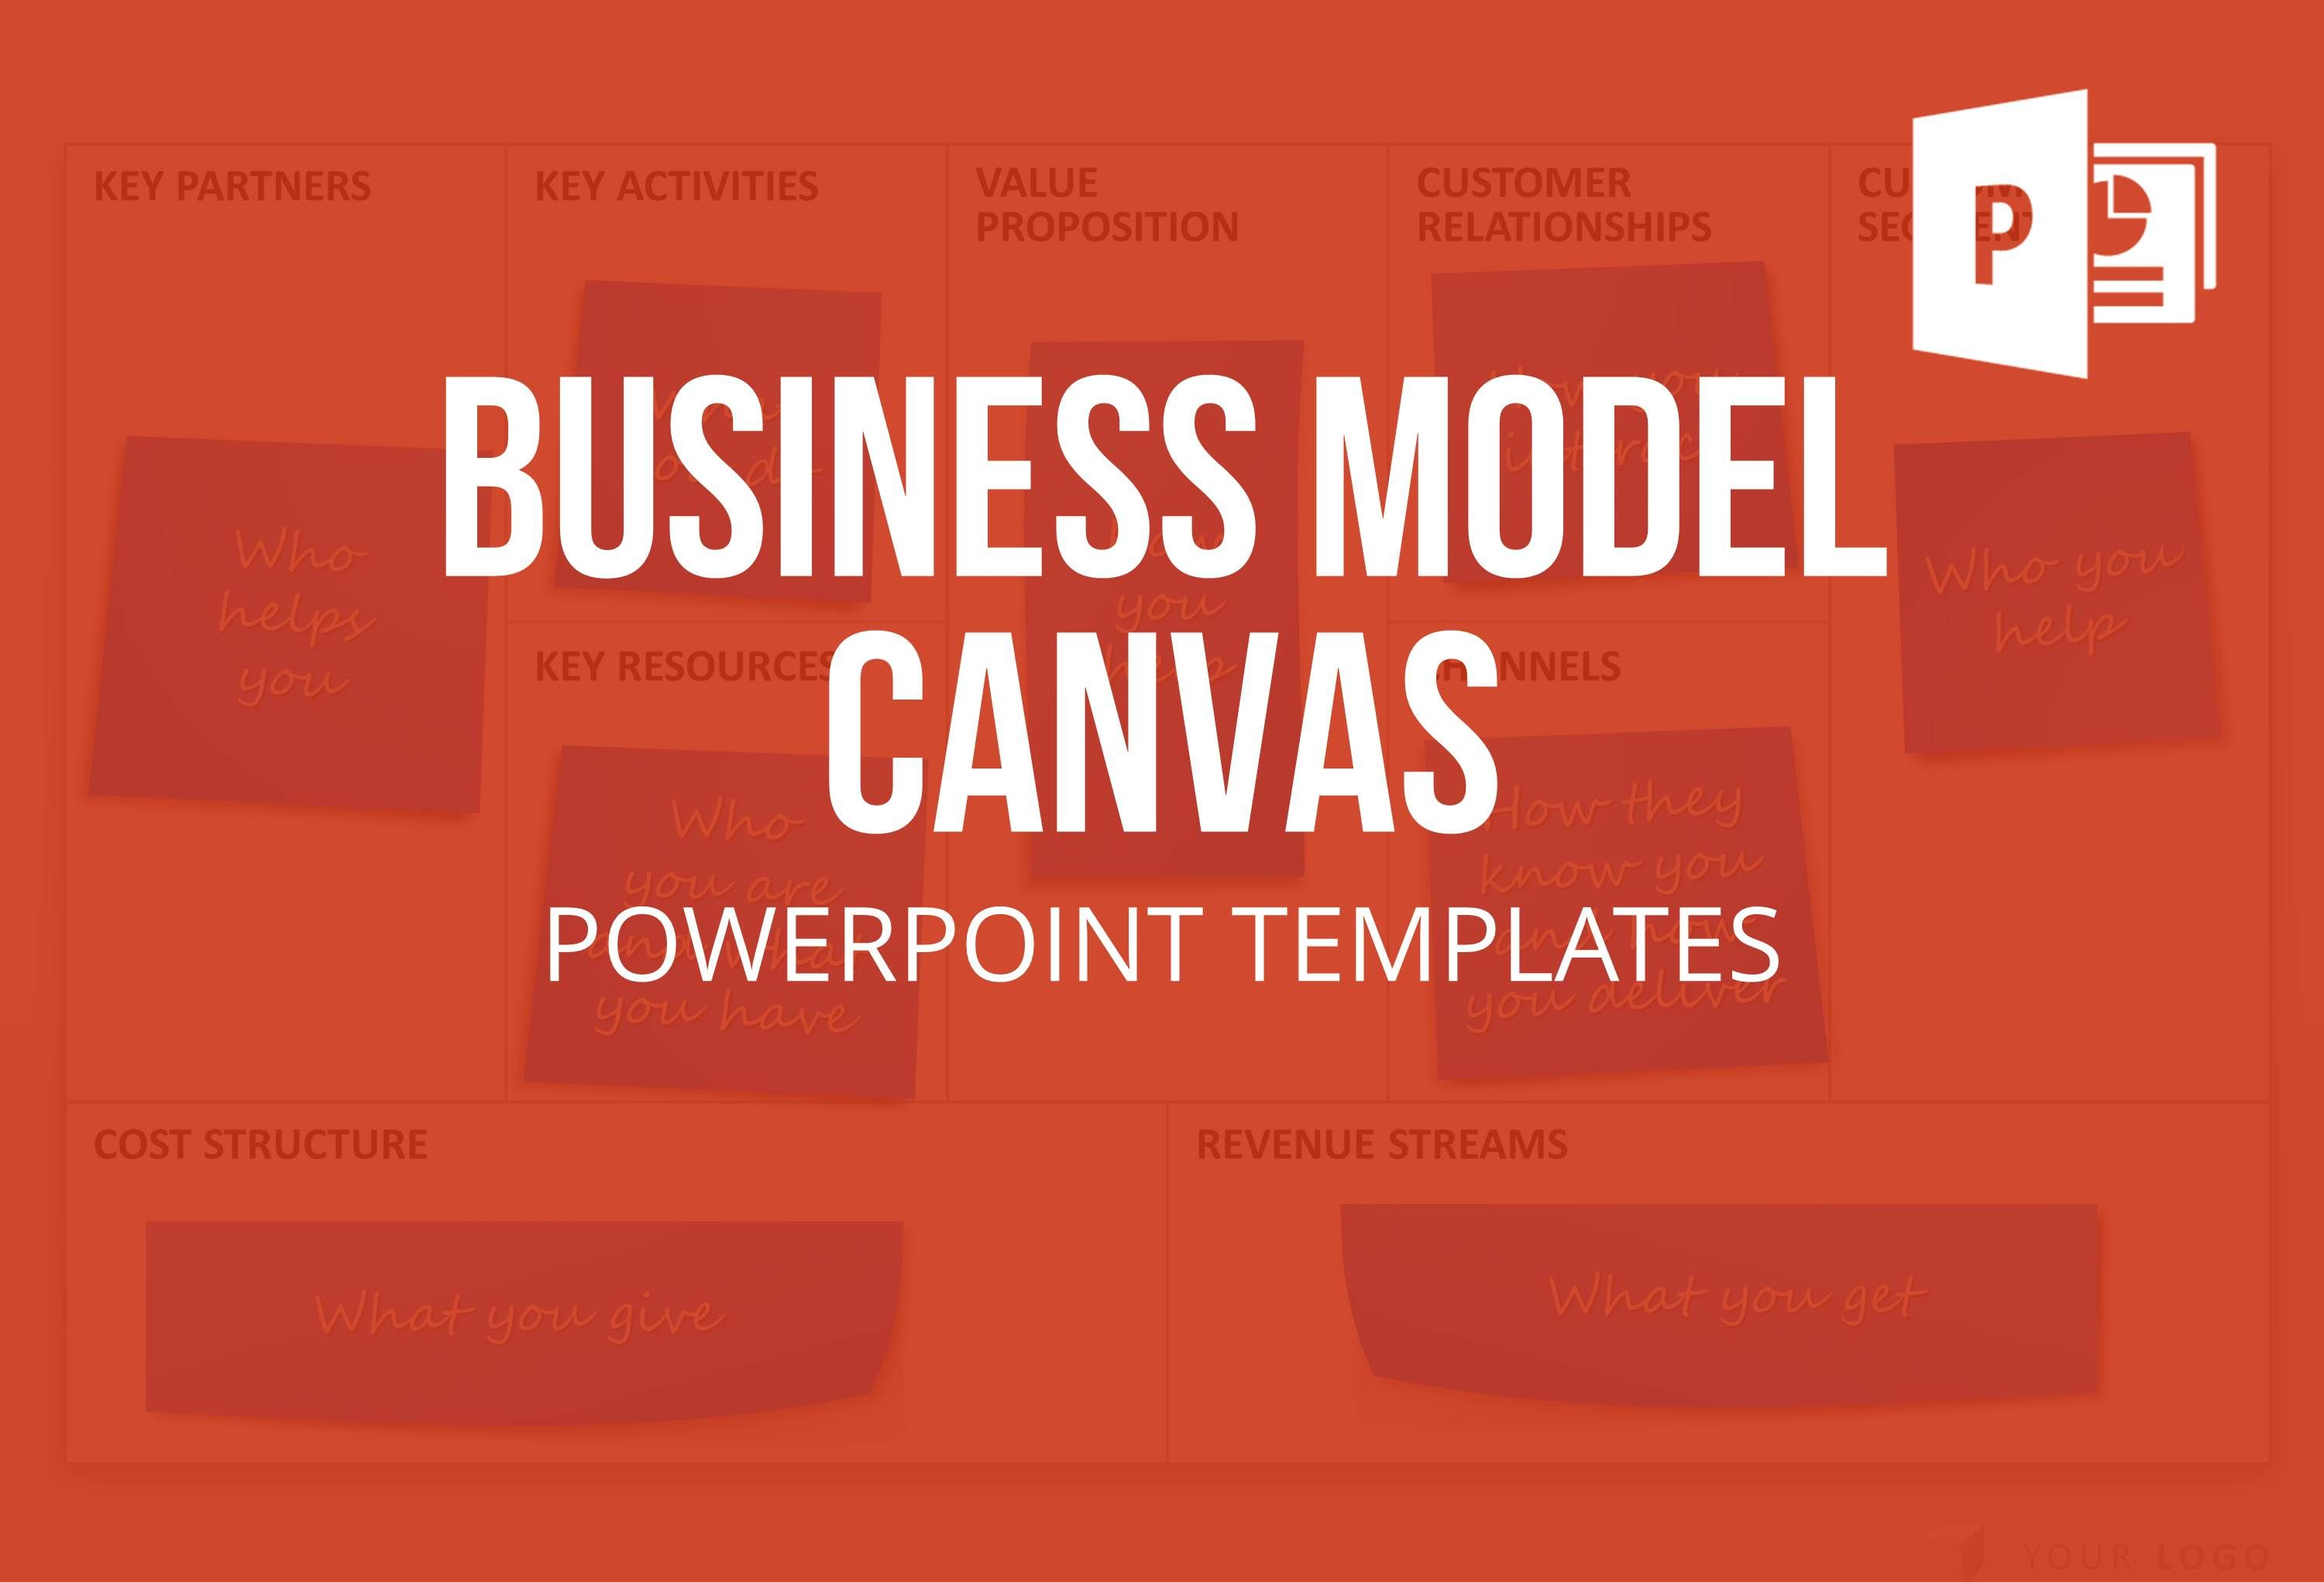 Business model canvas templates bmc for powerpoint for the business model canvas templates bmc for powerpoint for the planning and visualization of the strategic development of new and existing business models accmission Image collections